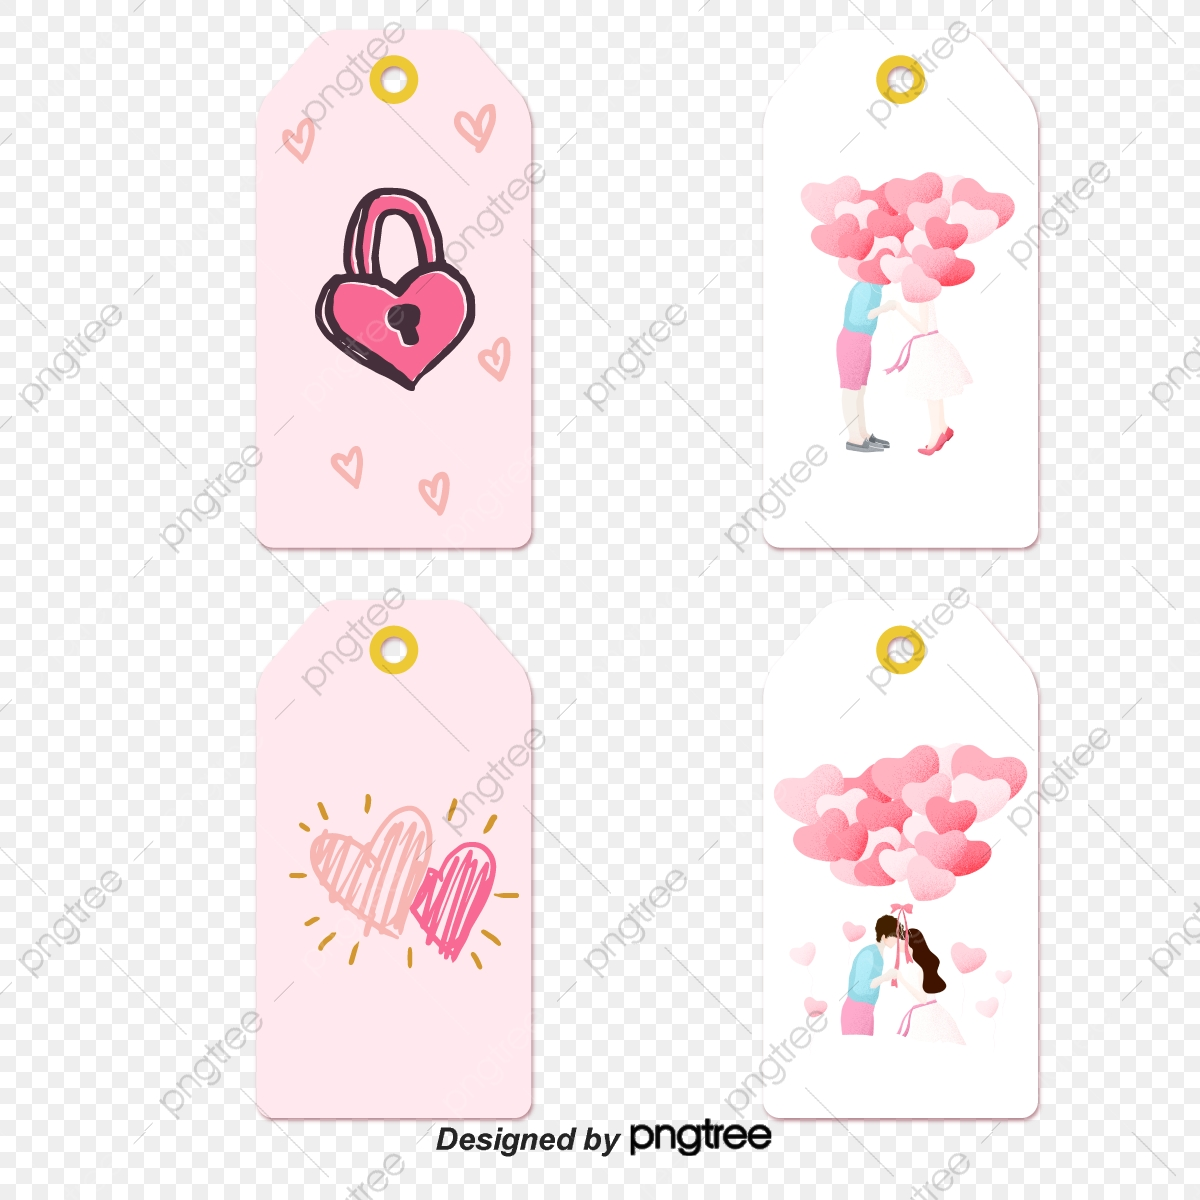 Logo Design Tag Clothing Tag Creative Title Png And Vector With Transparent Background For Free Download